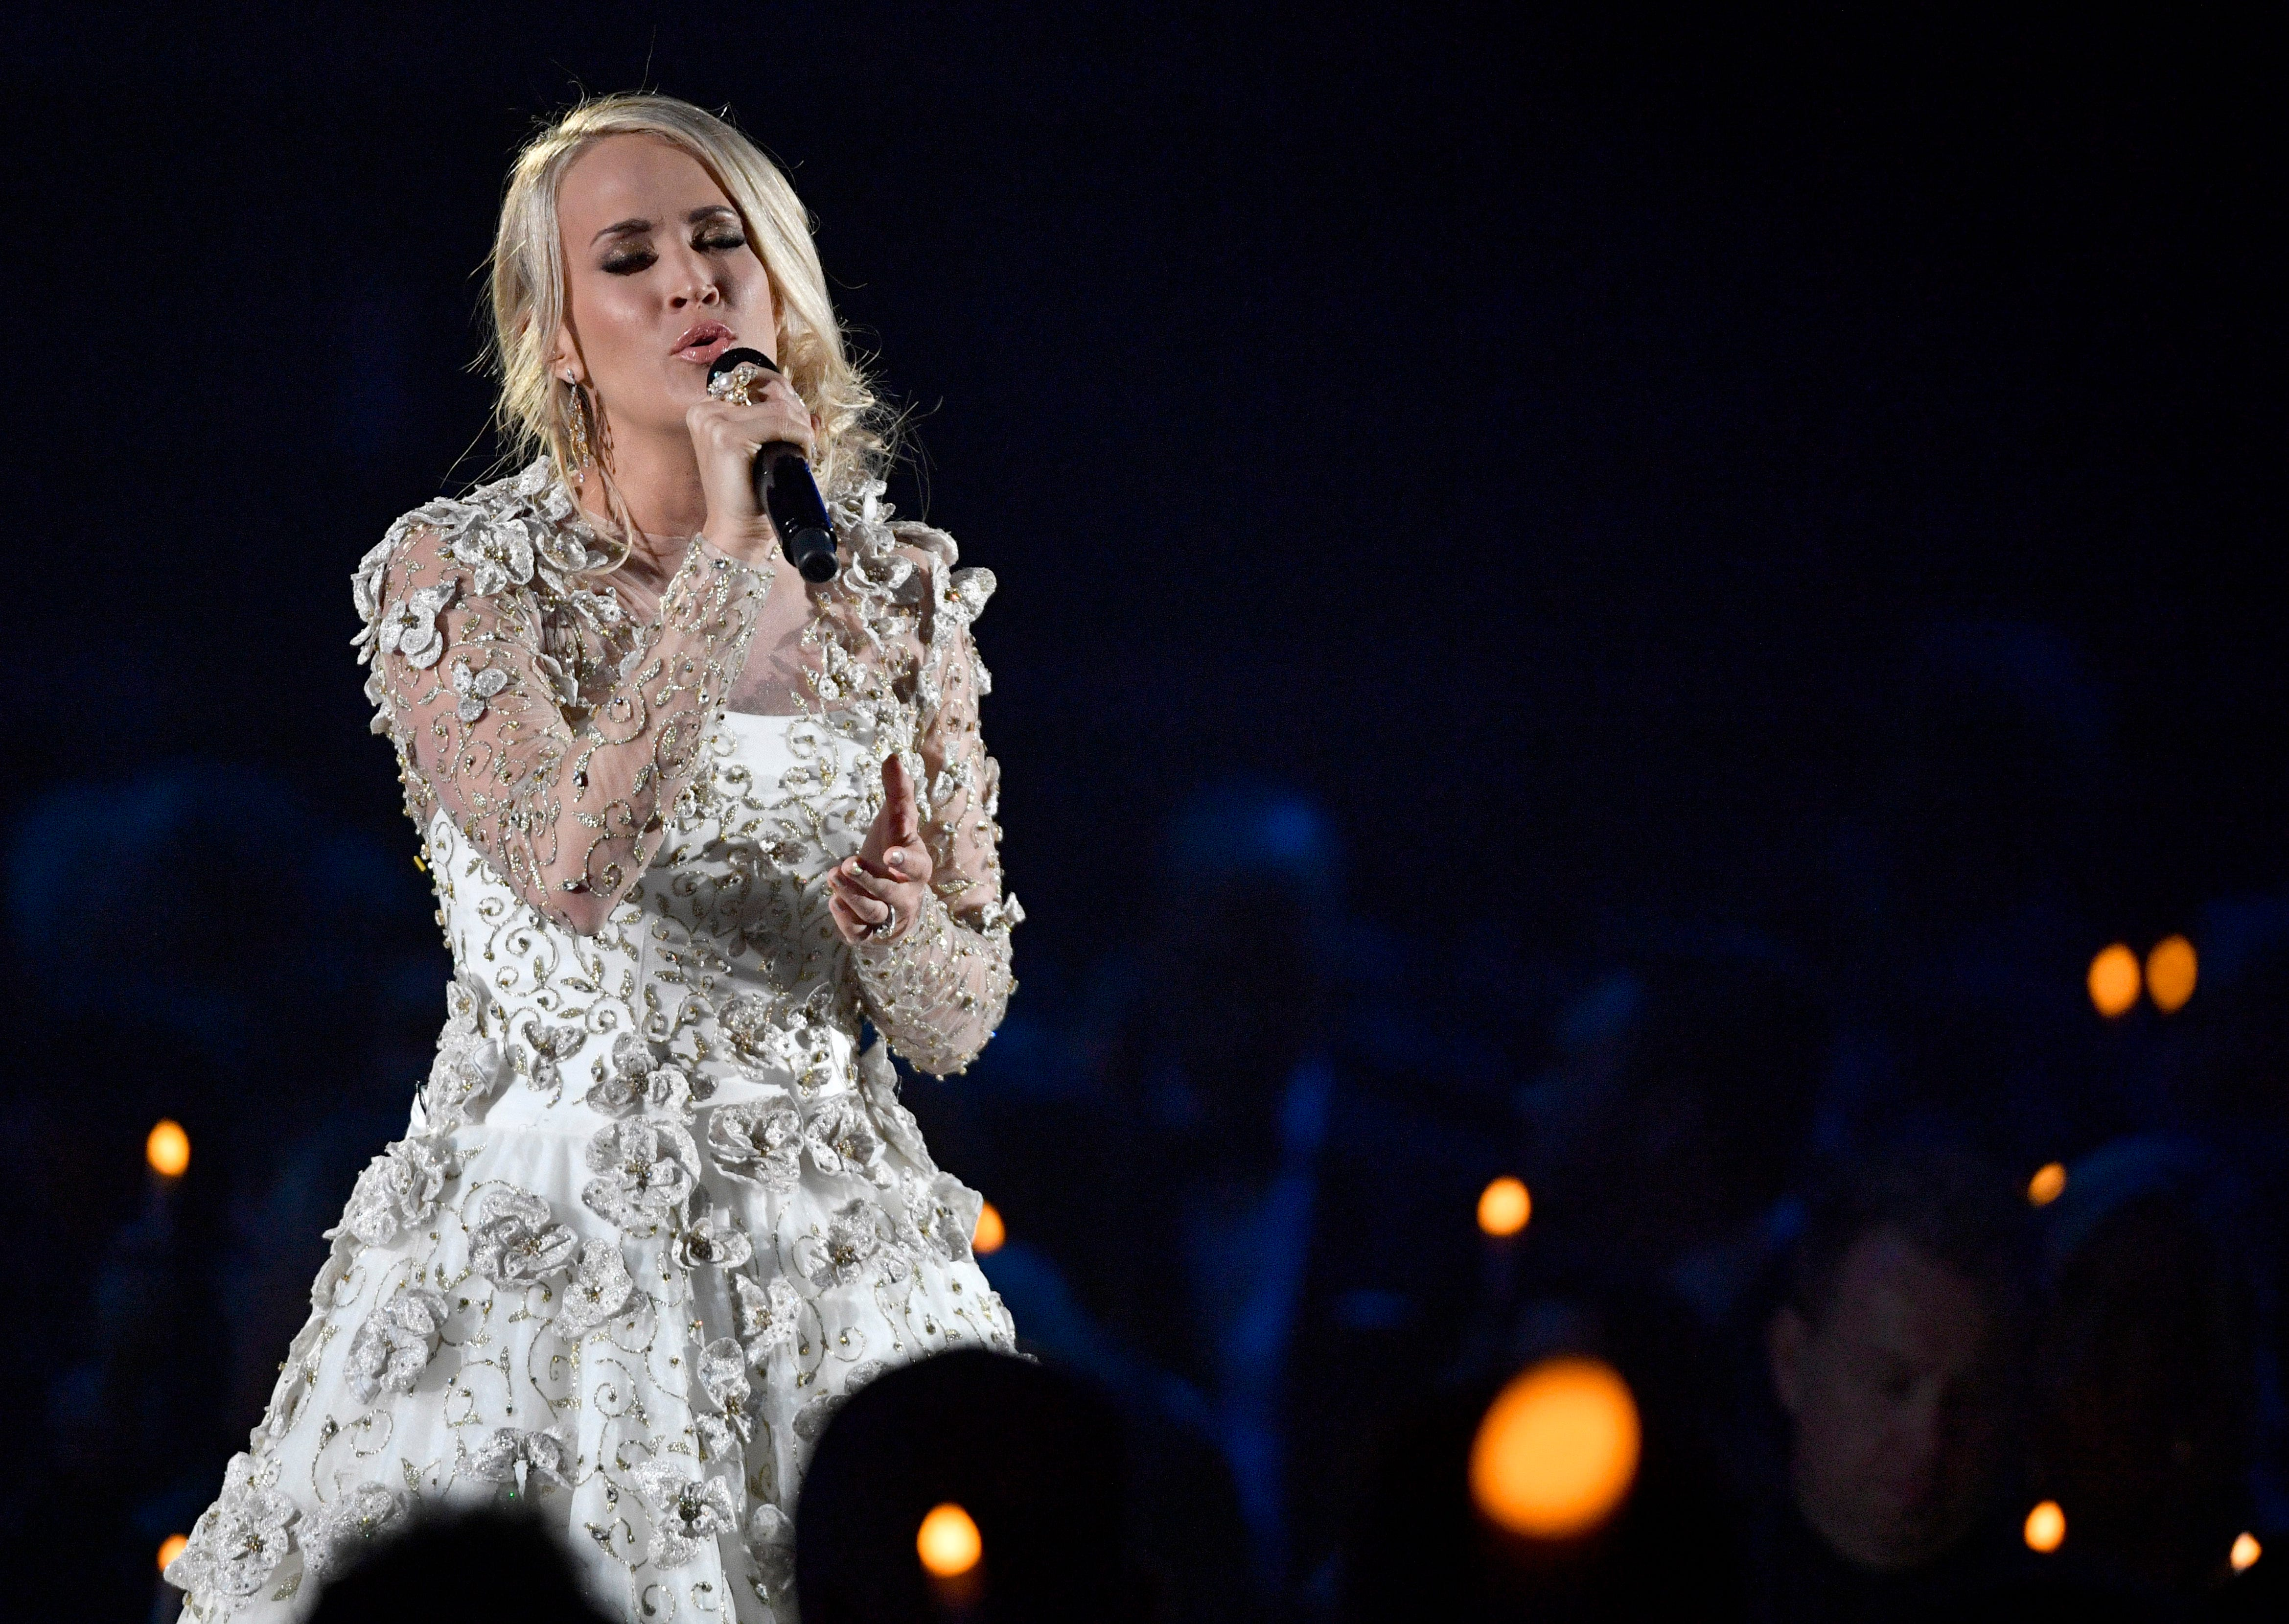 Carrie underwood tweets 39 i 39 ll be alright 39 after Carrie underwood softly and tenderly